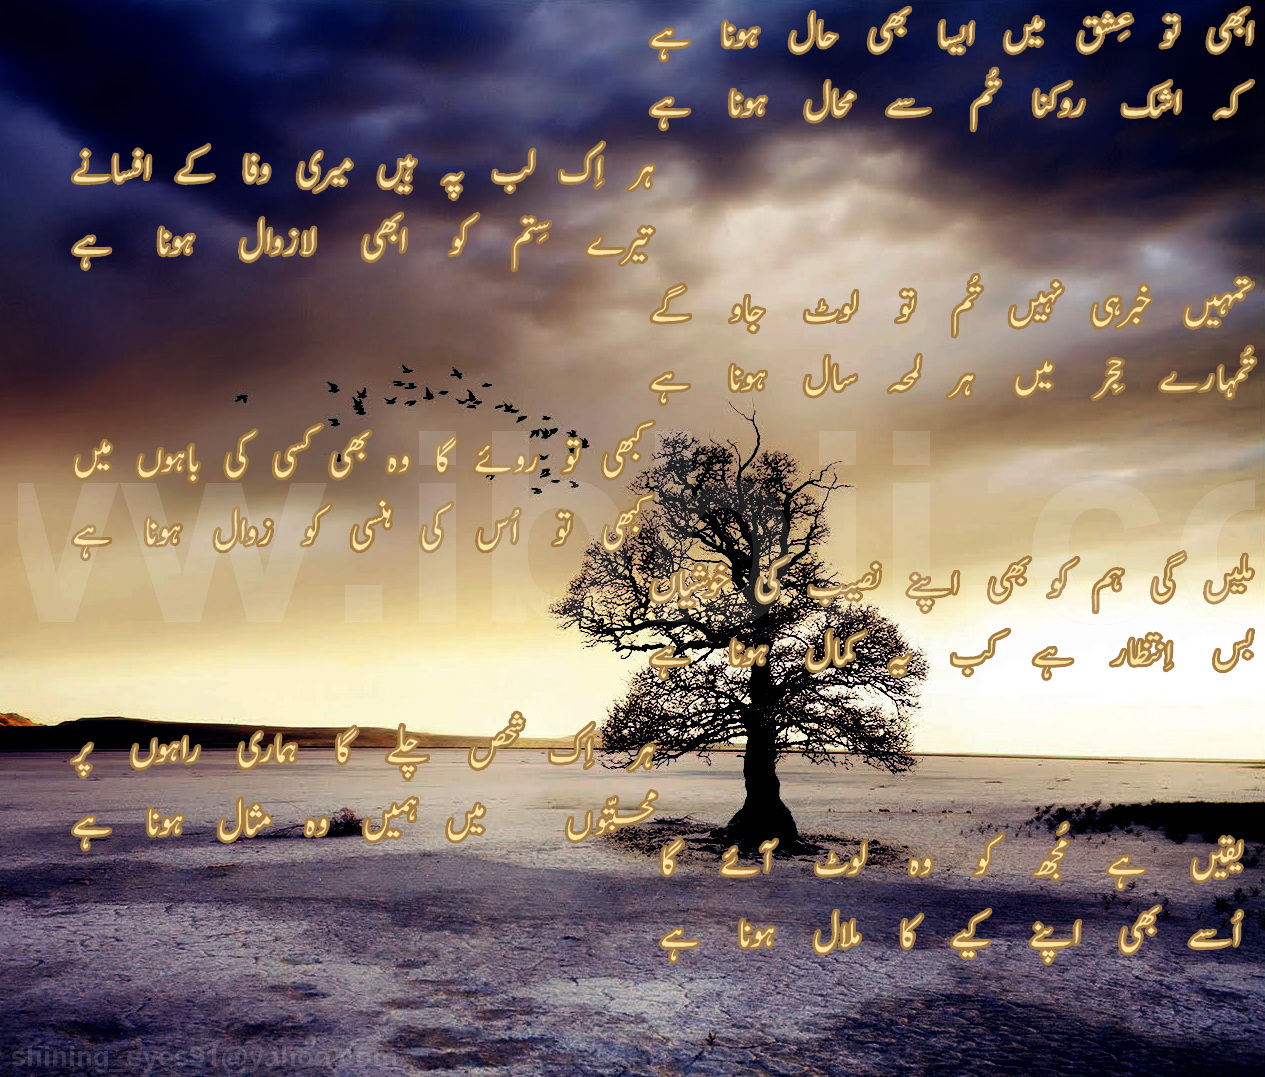 25 Sad Images With Quotes In English Download Free Hd: Sad Urdu Poetry HD Wallpaper